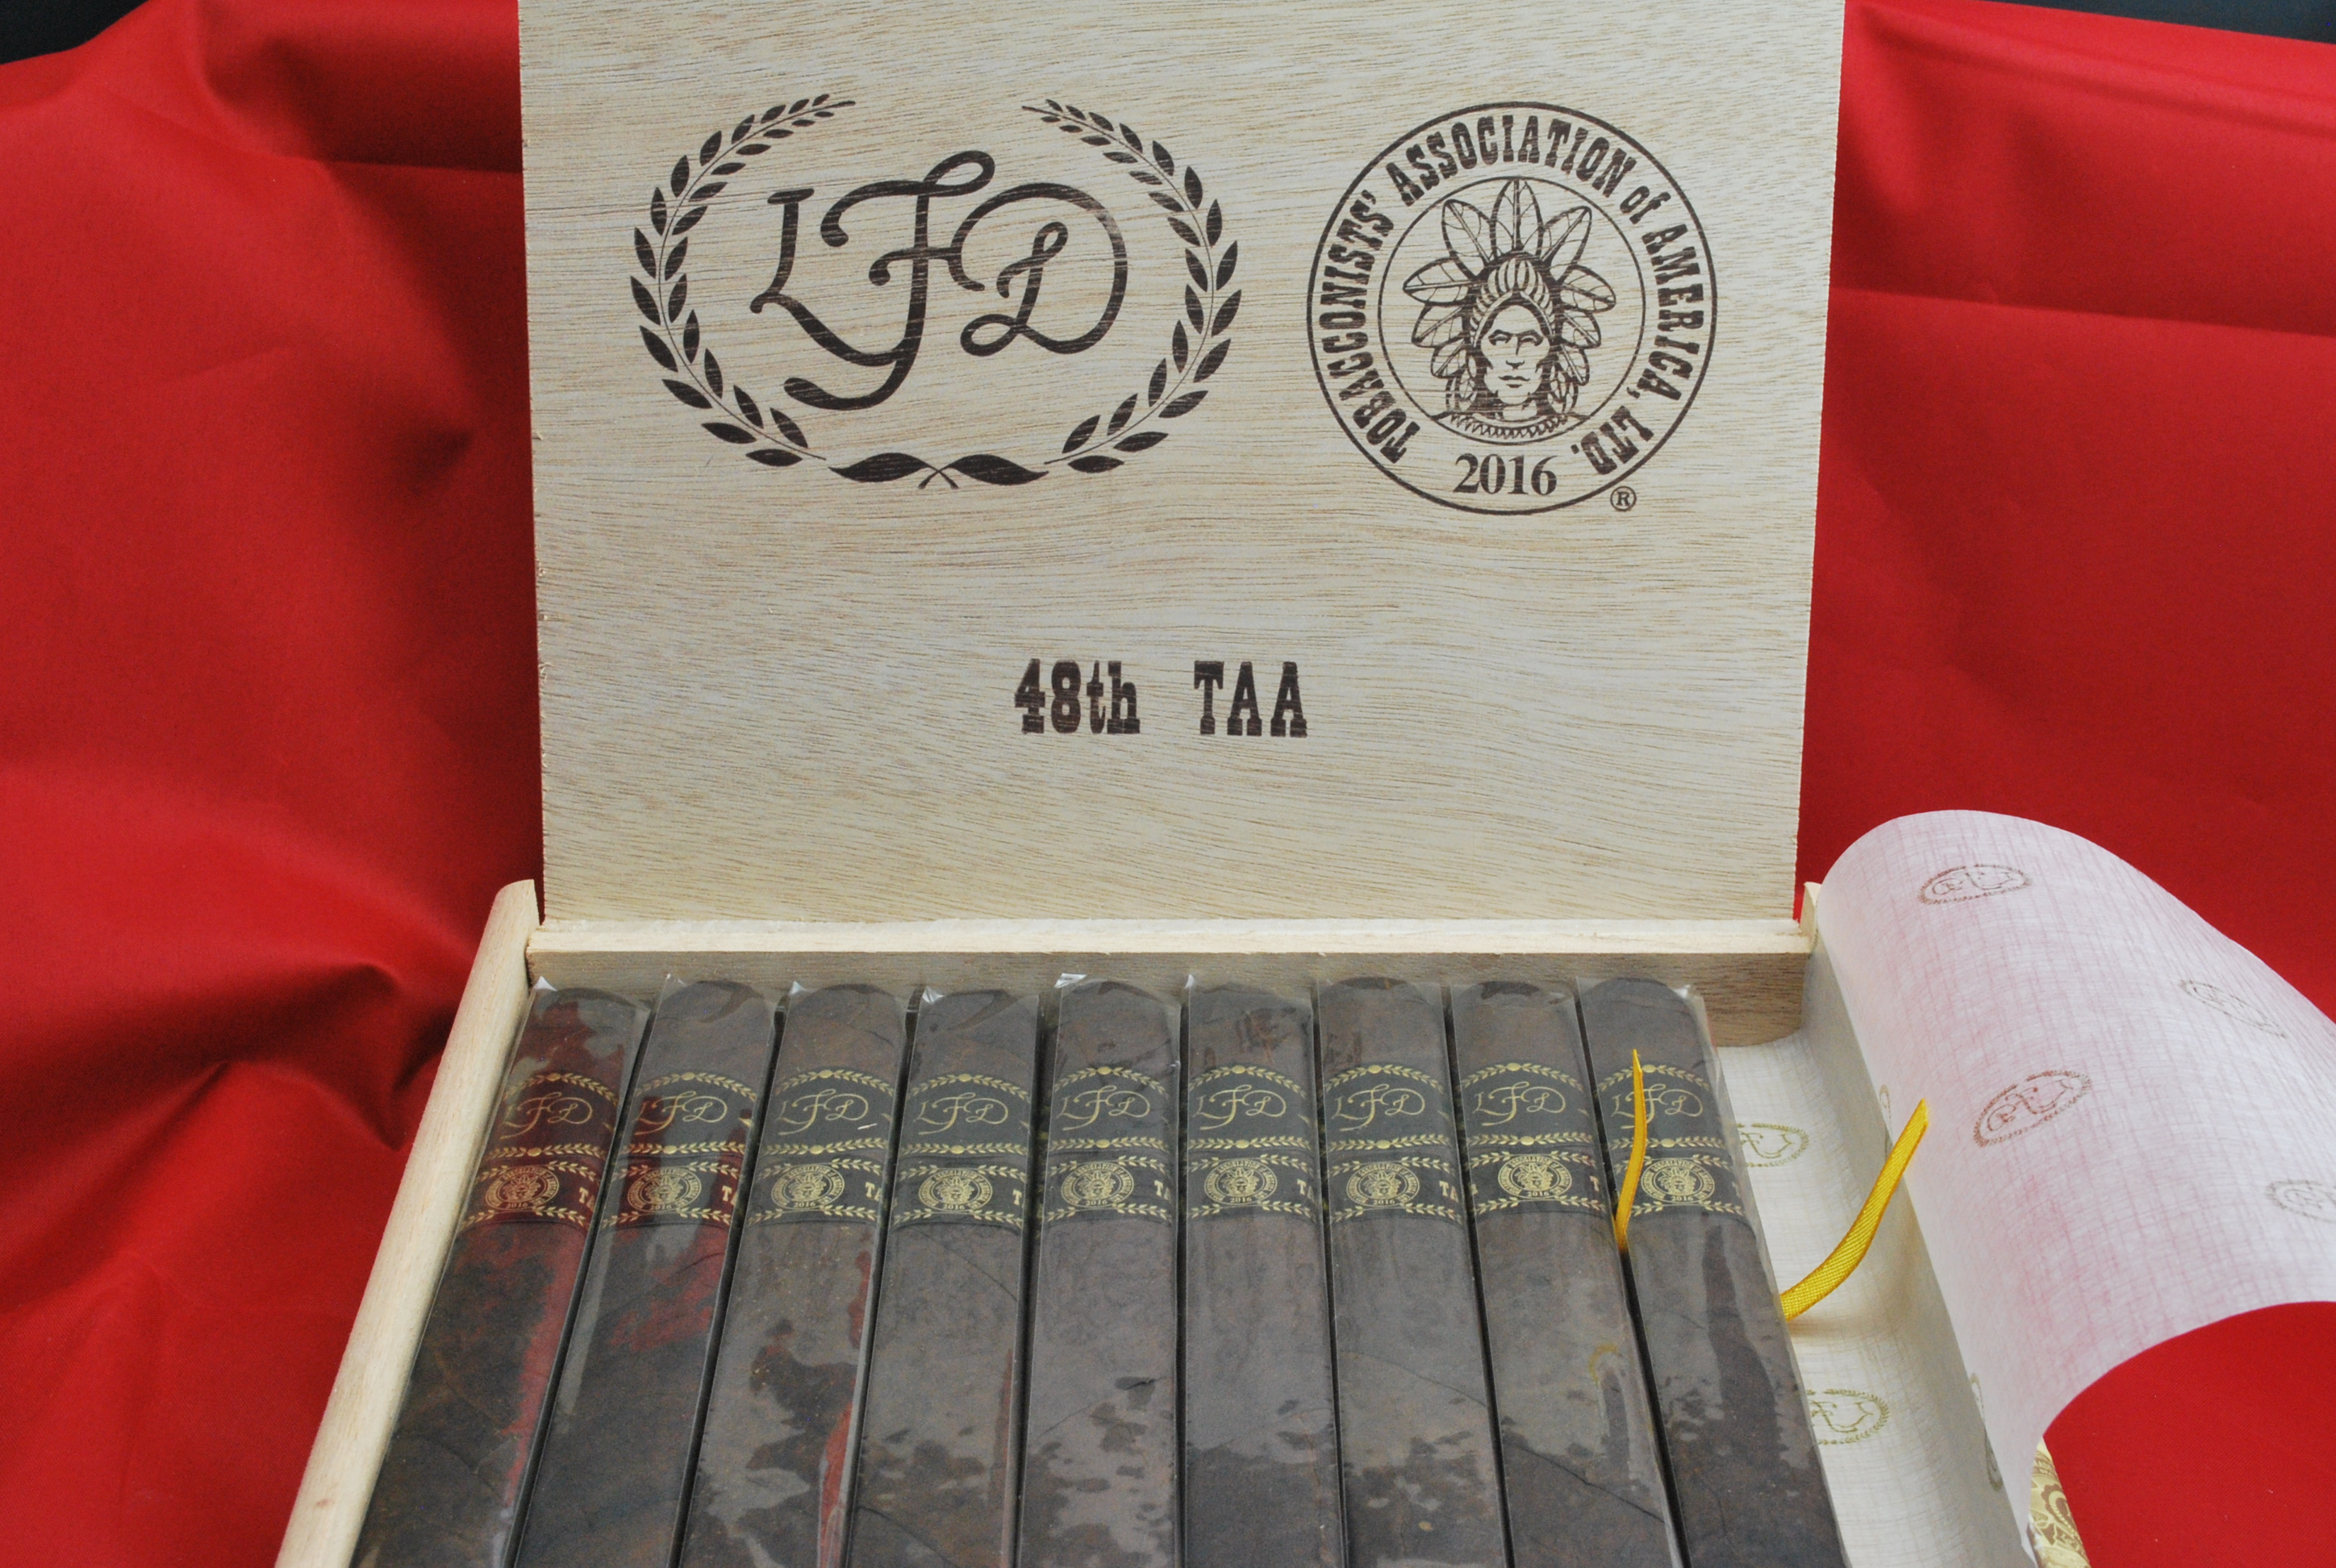 la_flor_dominicana_taa_48_celebration_limited_edition_maduro-open_box